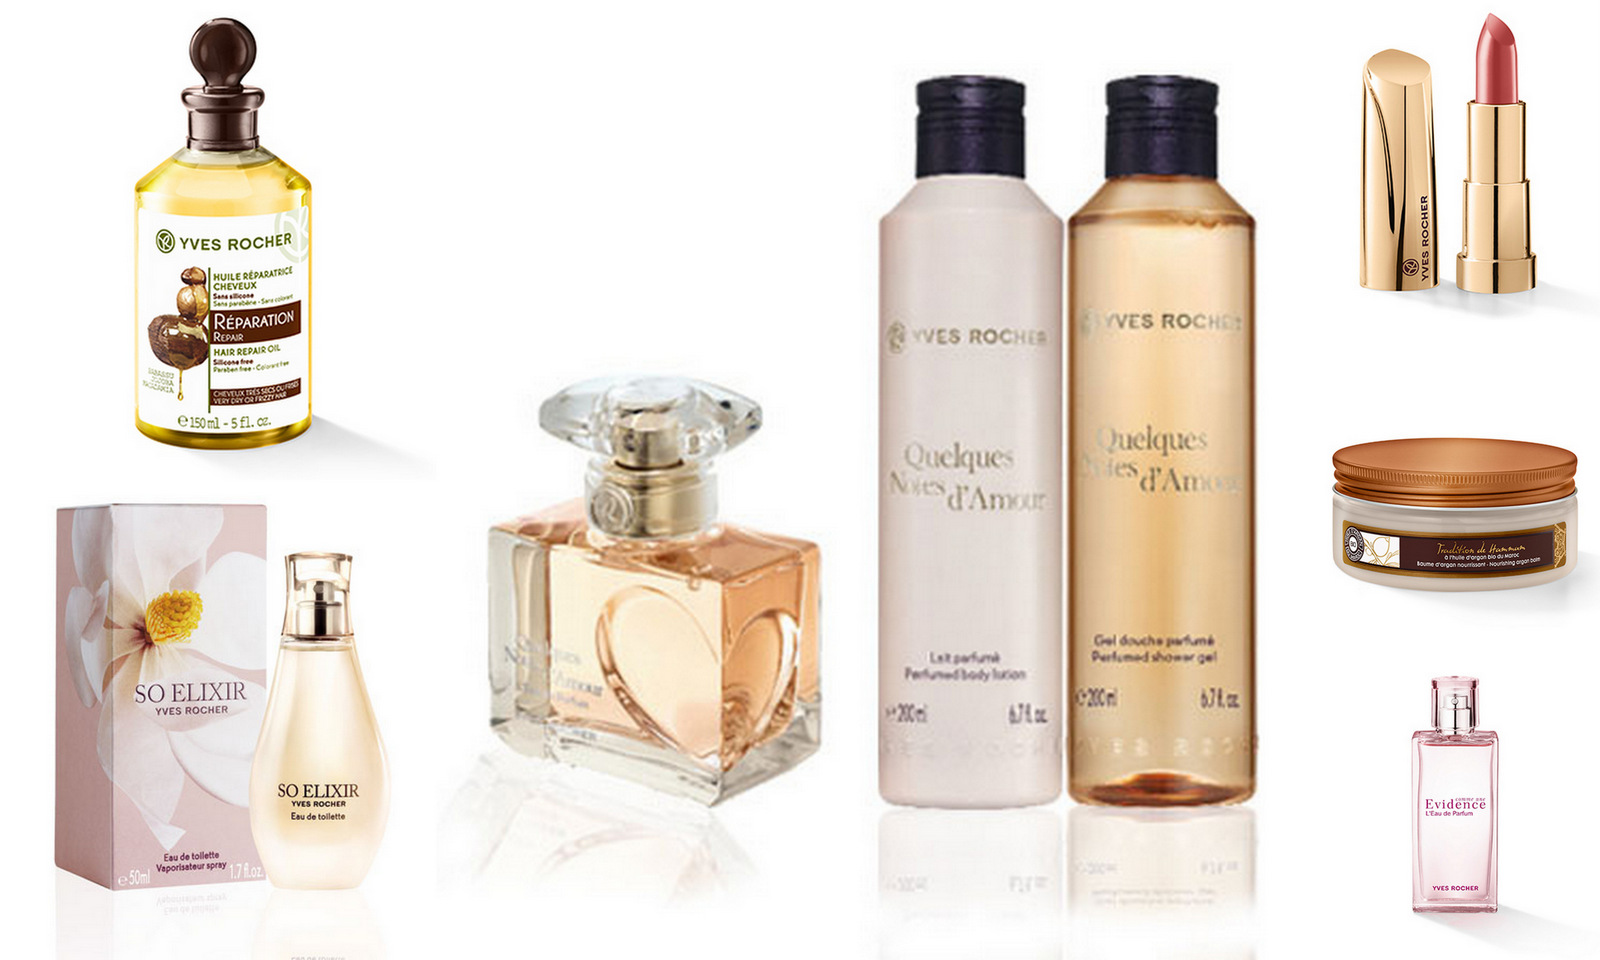 Yves Rocher Mothers Day Gift Guide + Offers